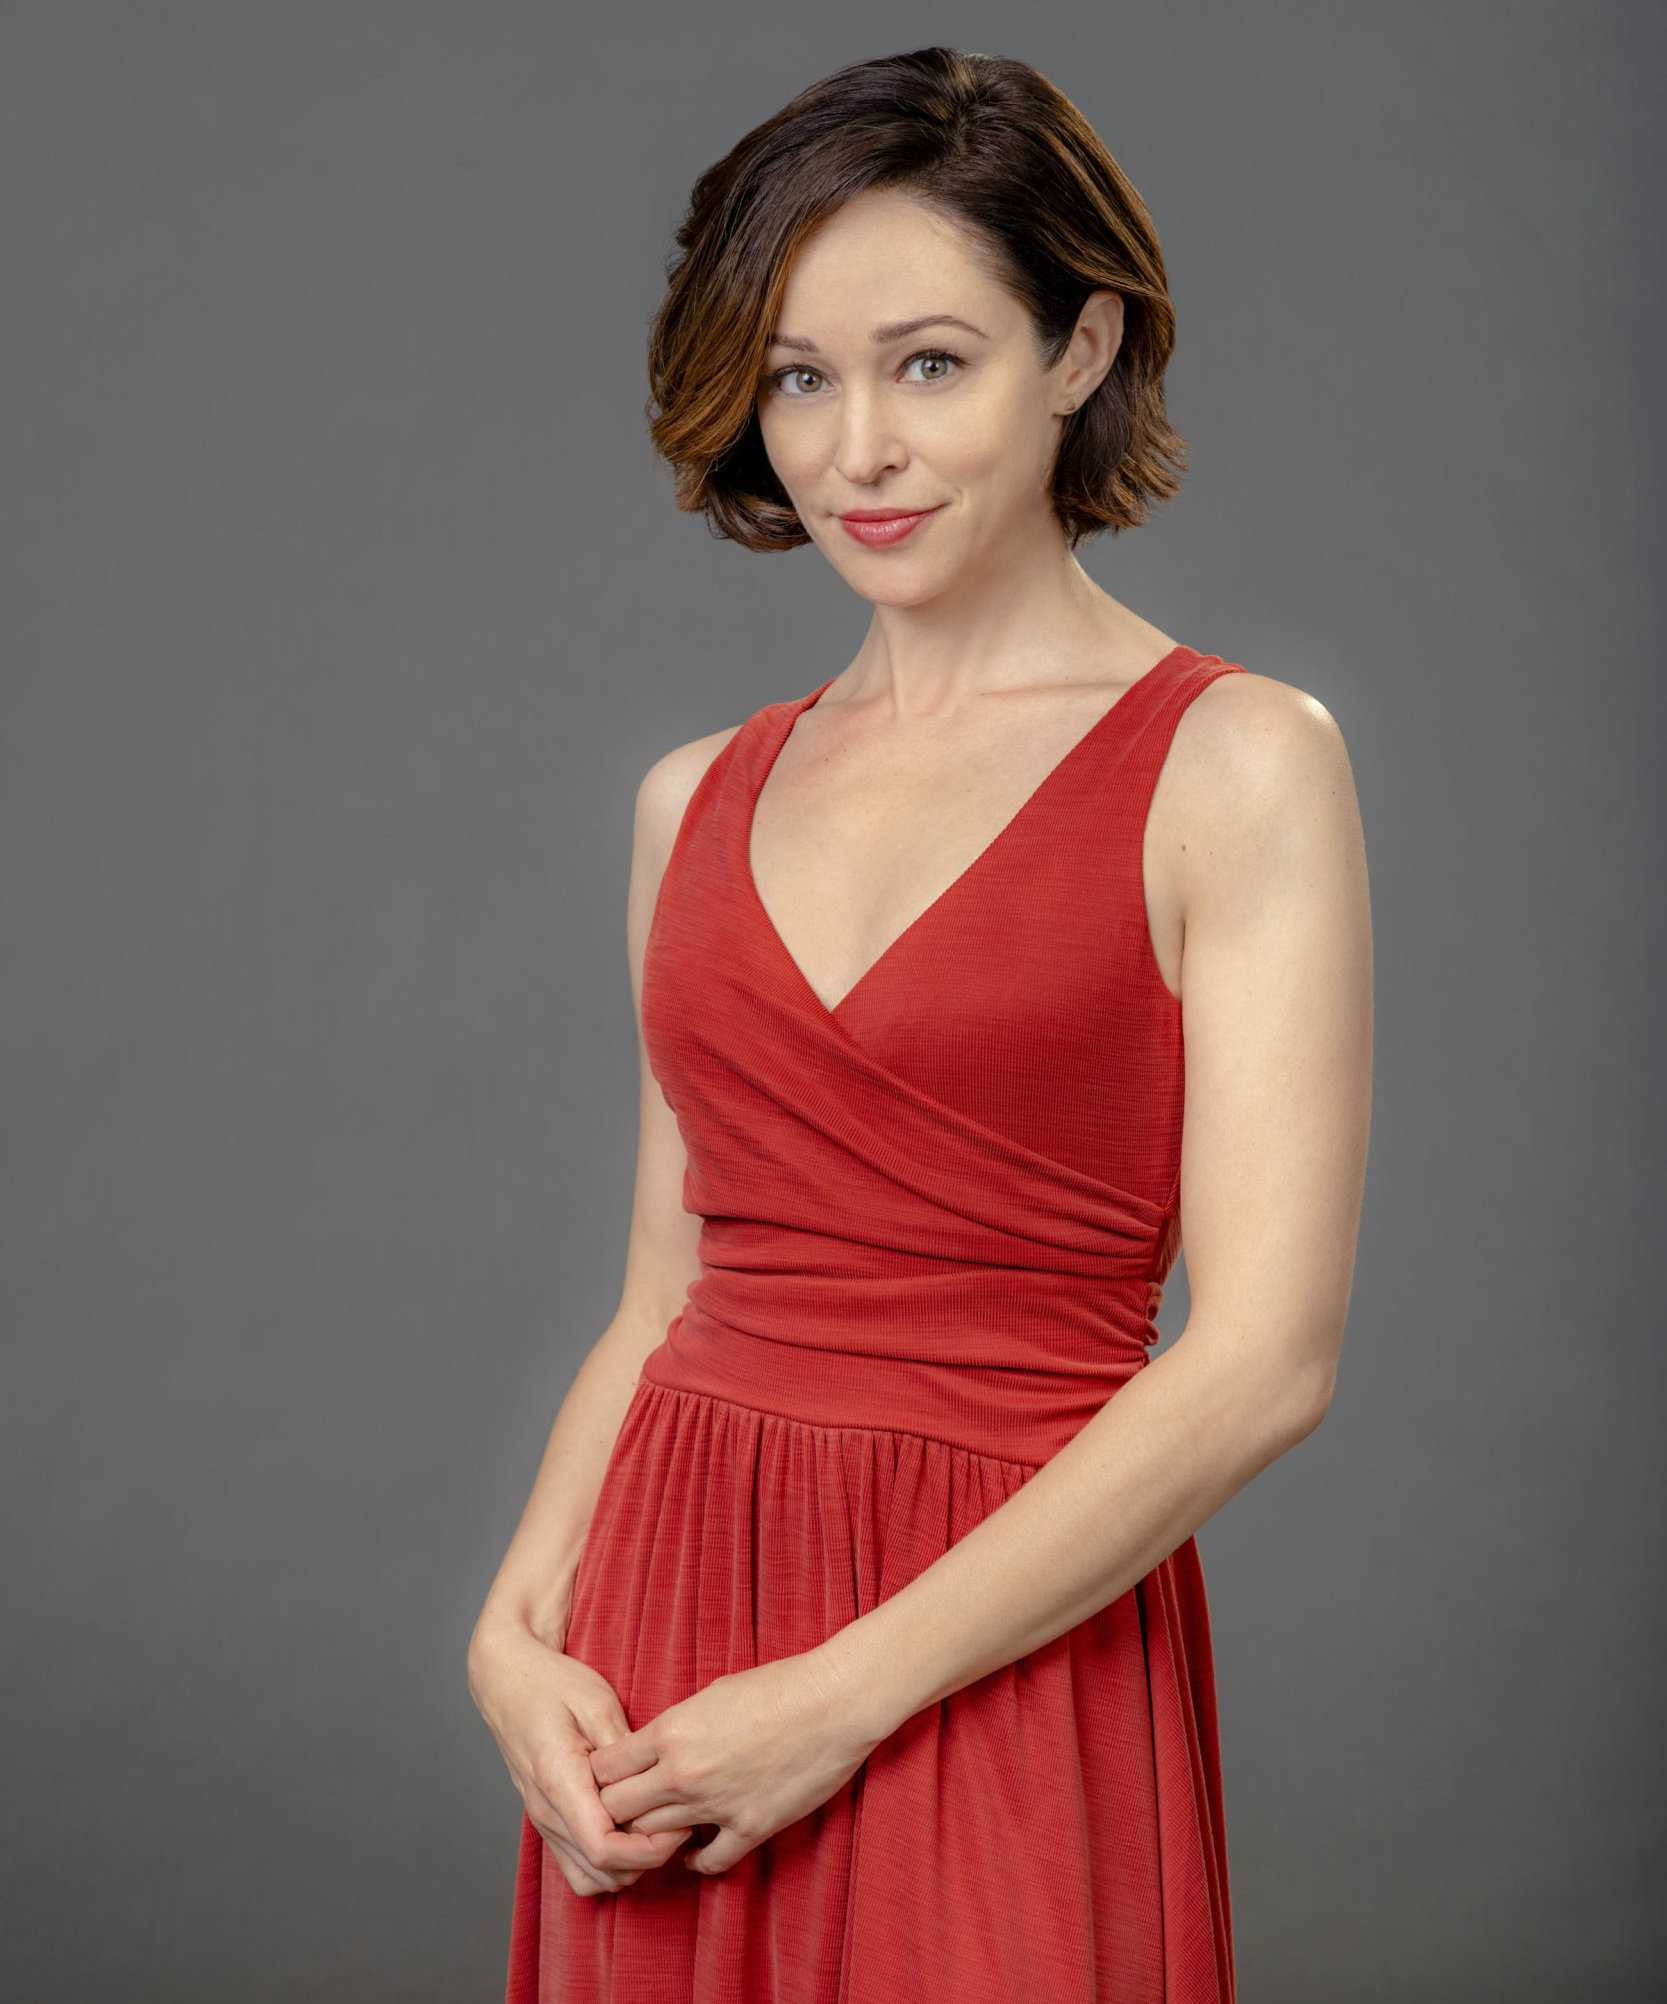 Autumn Reeser Career